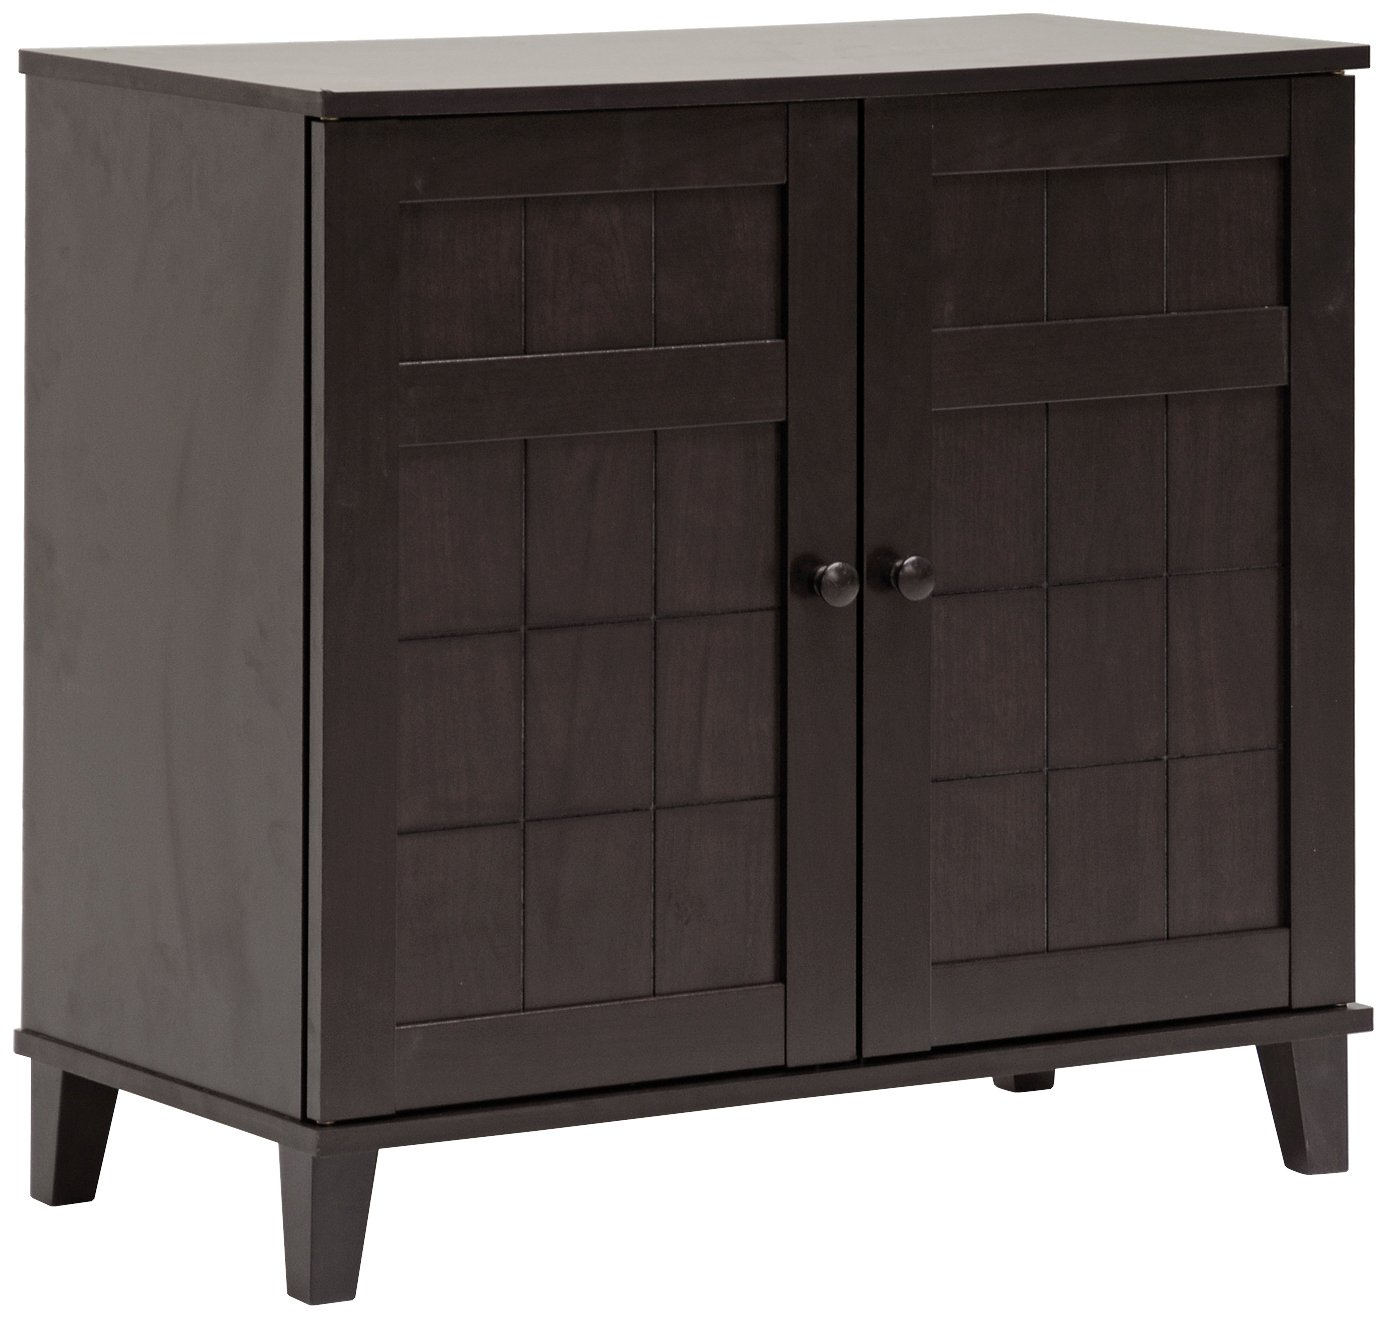 Amazon.com Baxton Studio Glidden Wood Modern Shoe Cabinet Short Dark Brown Kitchen u0026 Dining  sc 1 st  Amazon.com & Amazon.com: Baxton Studio Glidden Wood Modern Shoe Cabinet Short ...